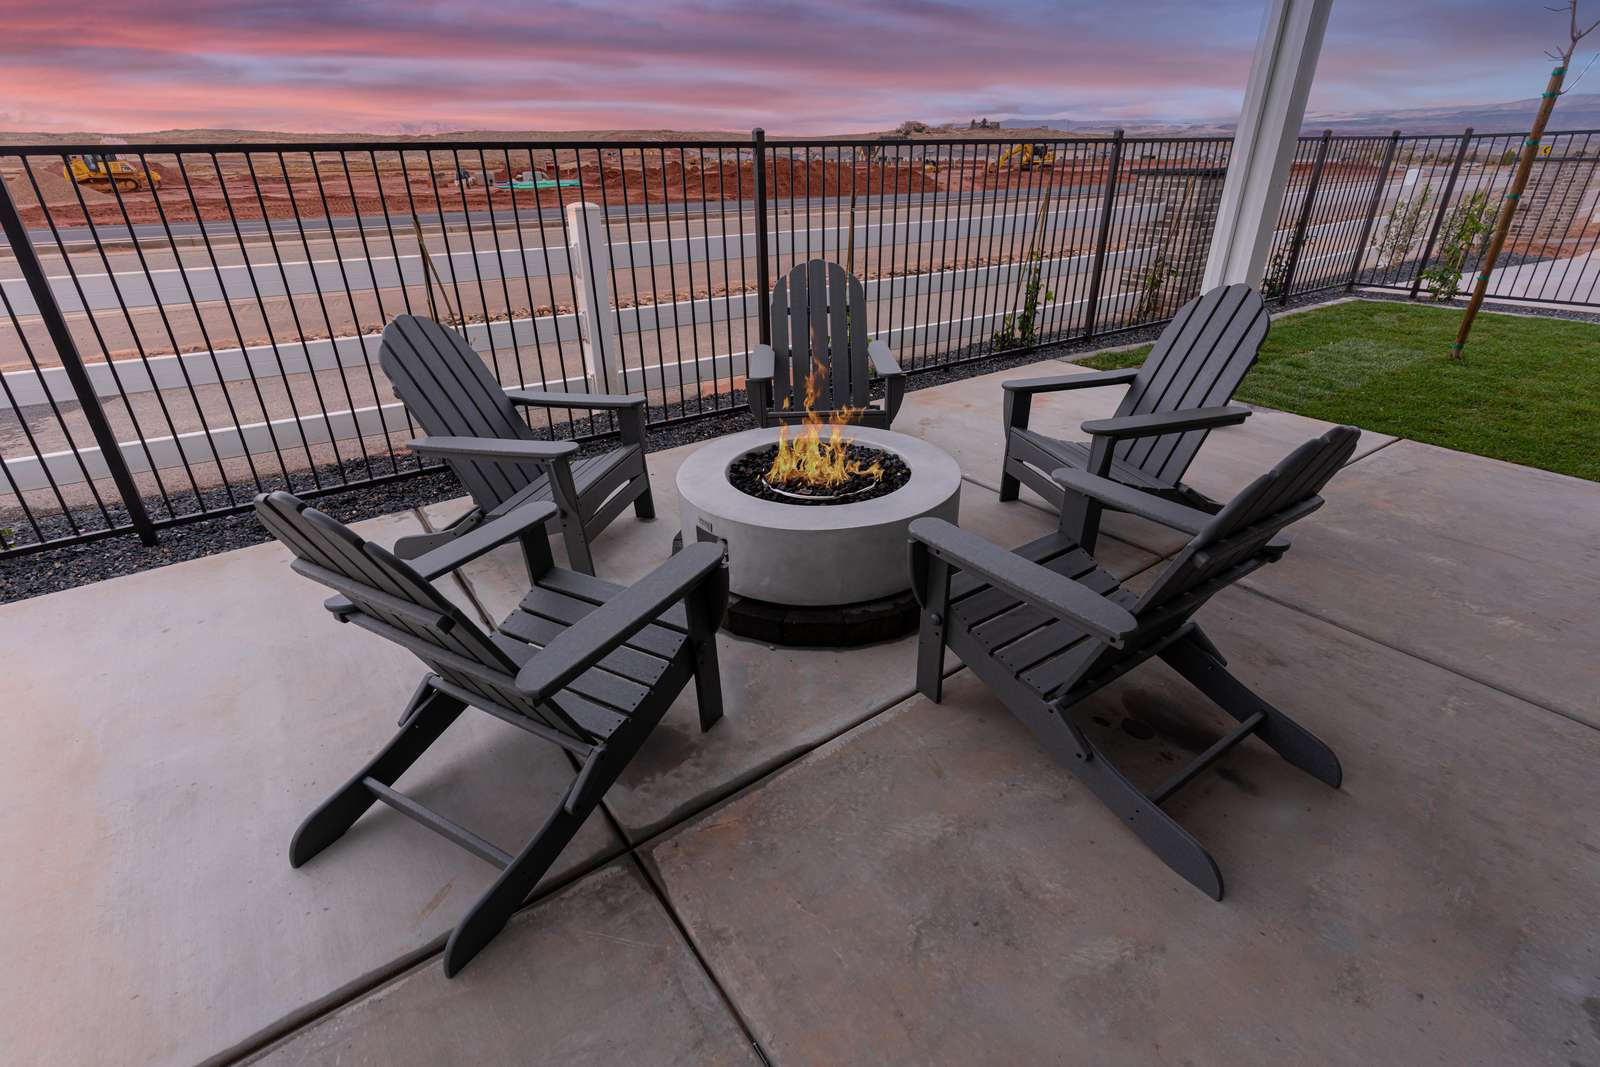 Fire feature with chairs